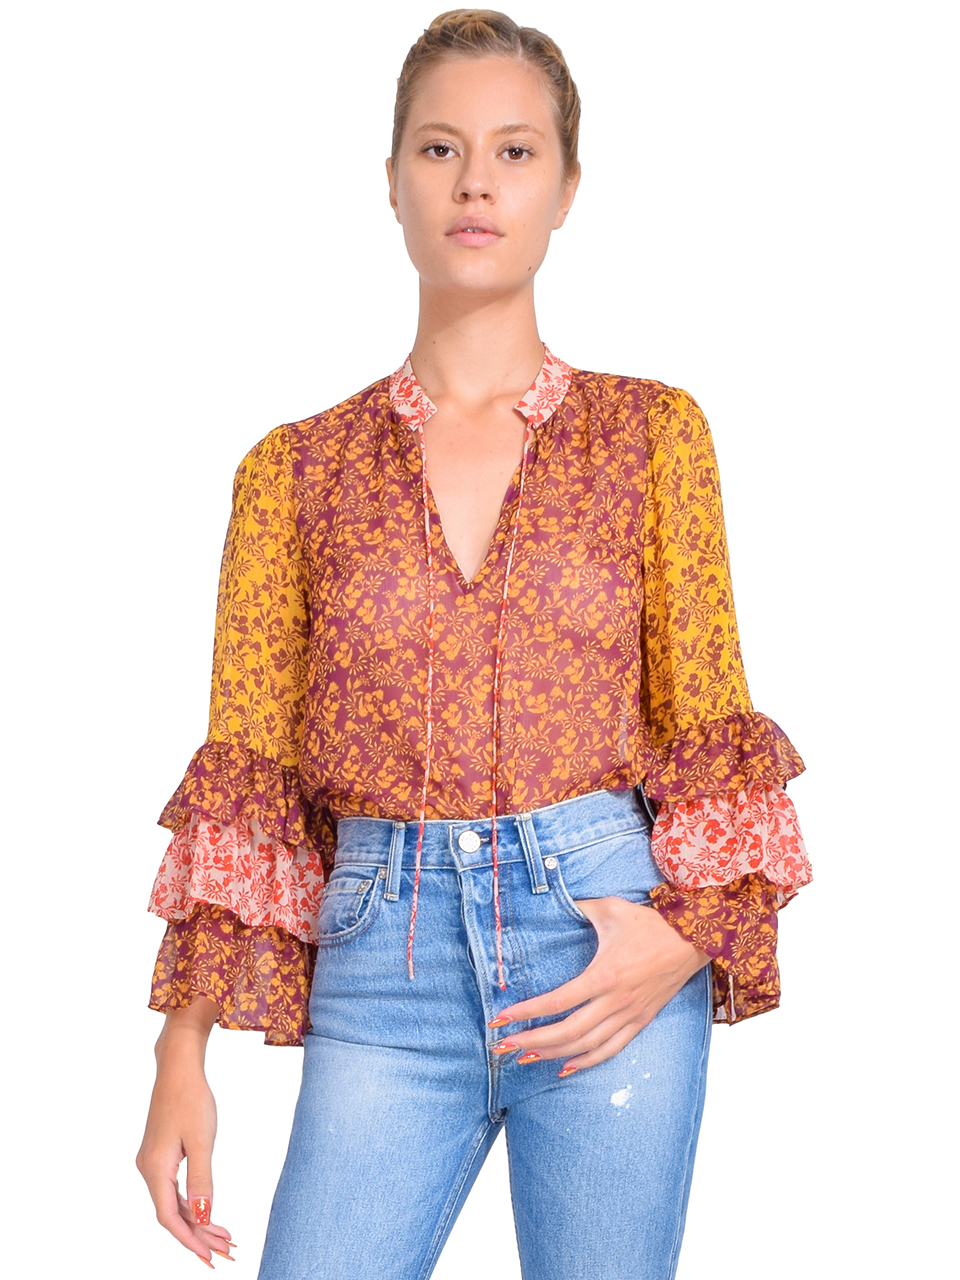 Alice + Olivia Justice Ruffle Sleeve Blouse in Rome Floral Front View  x1https://cdn11.bigcommerce.com/s-3wu6n/products/33391/images/110389/110__67804.1600292274.244.365.jpg?c=2x2